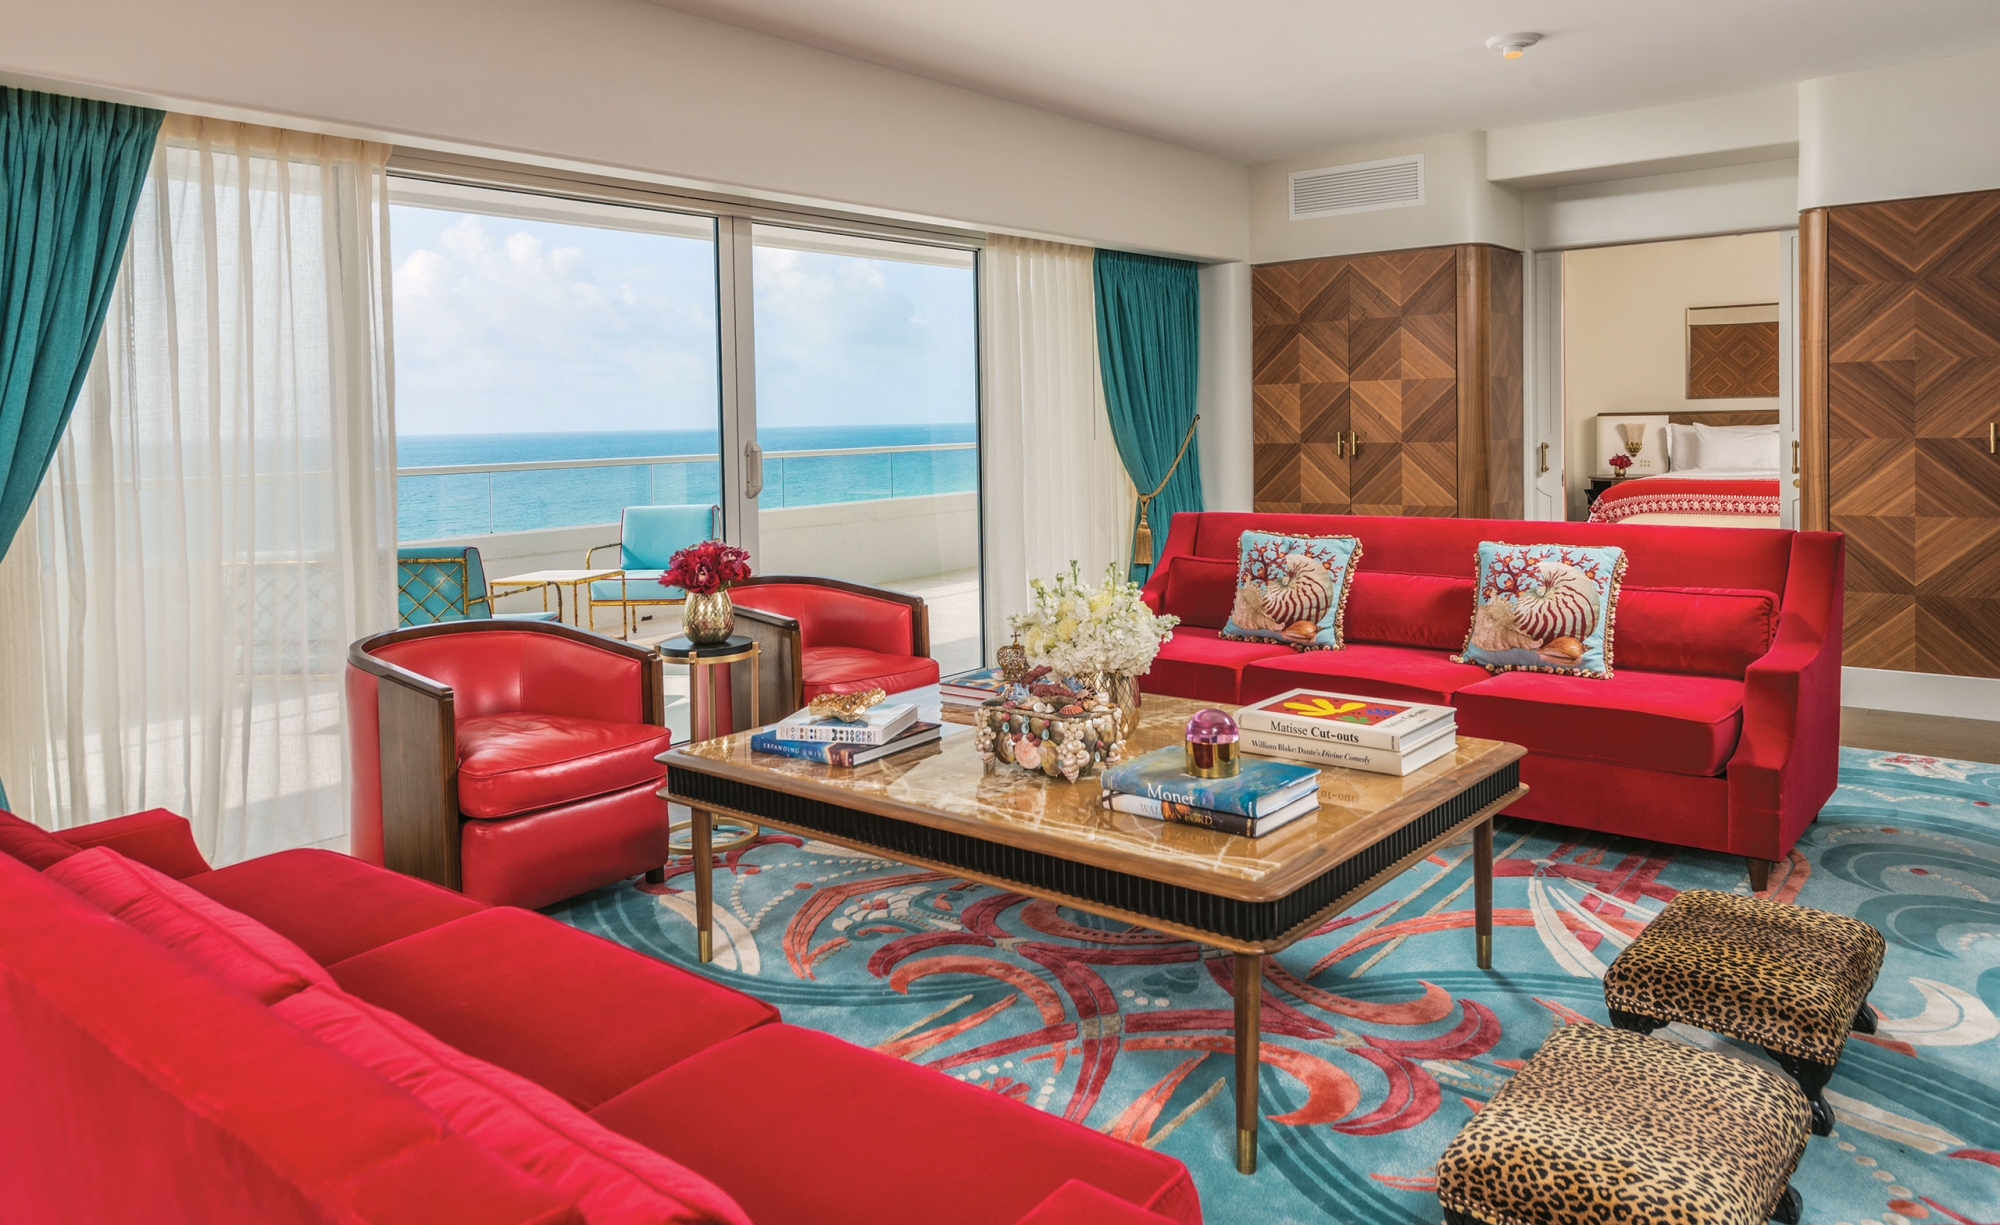 The Penthouse Residences at Faena Hotel Miami Beach  Faena Miami Beach